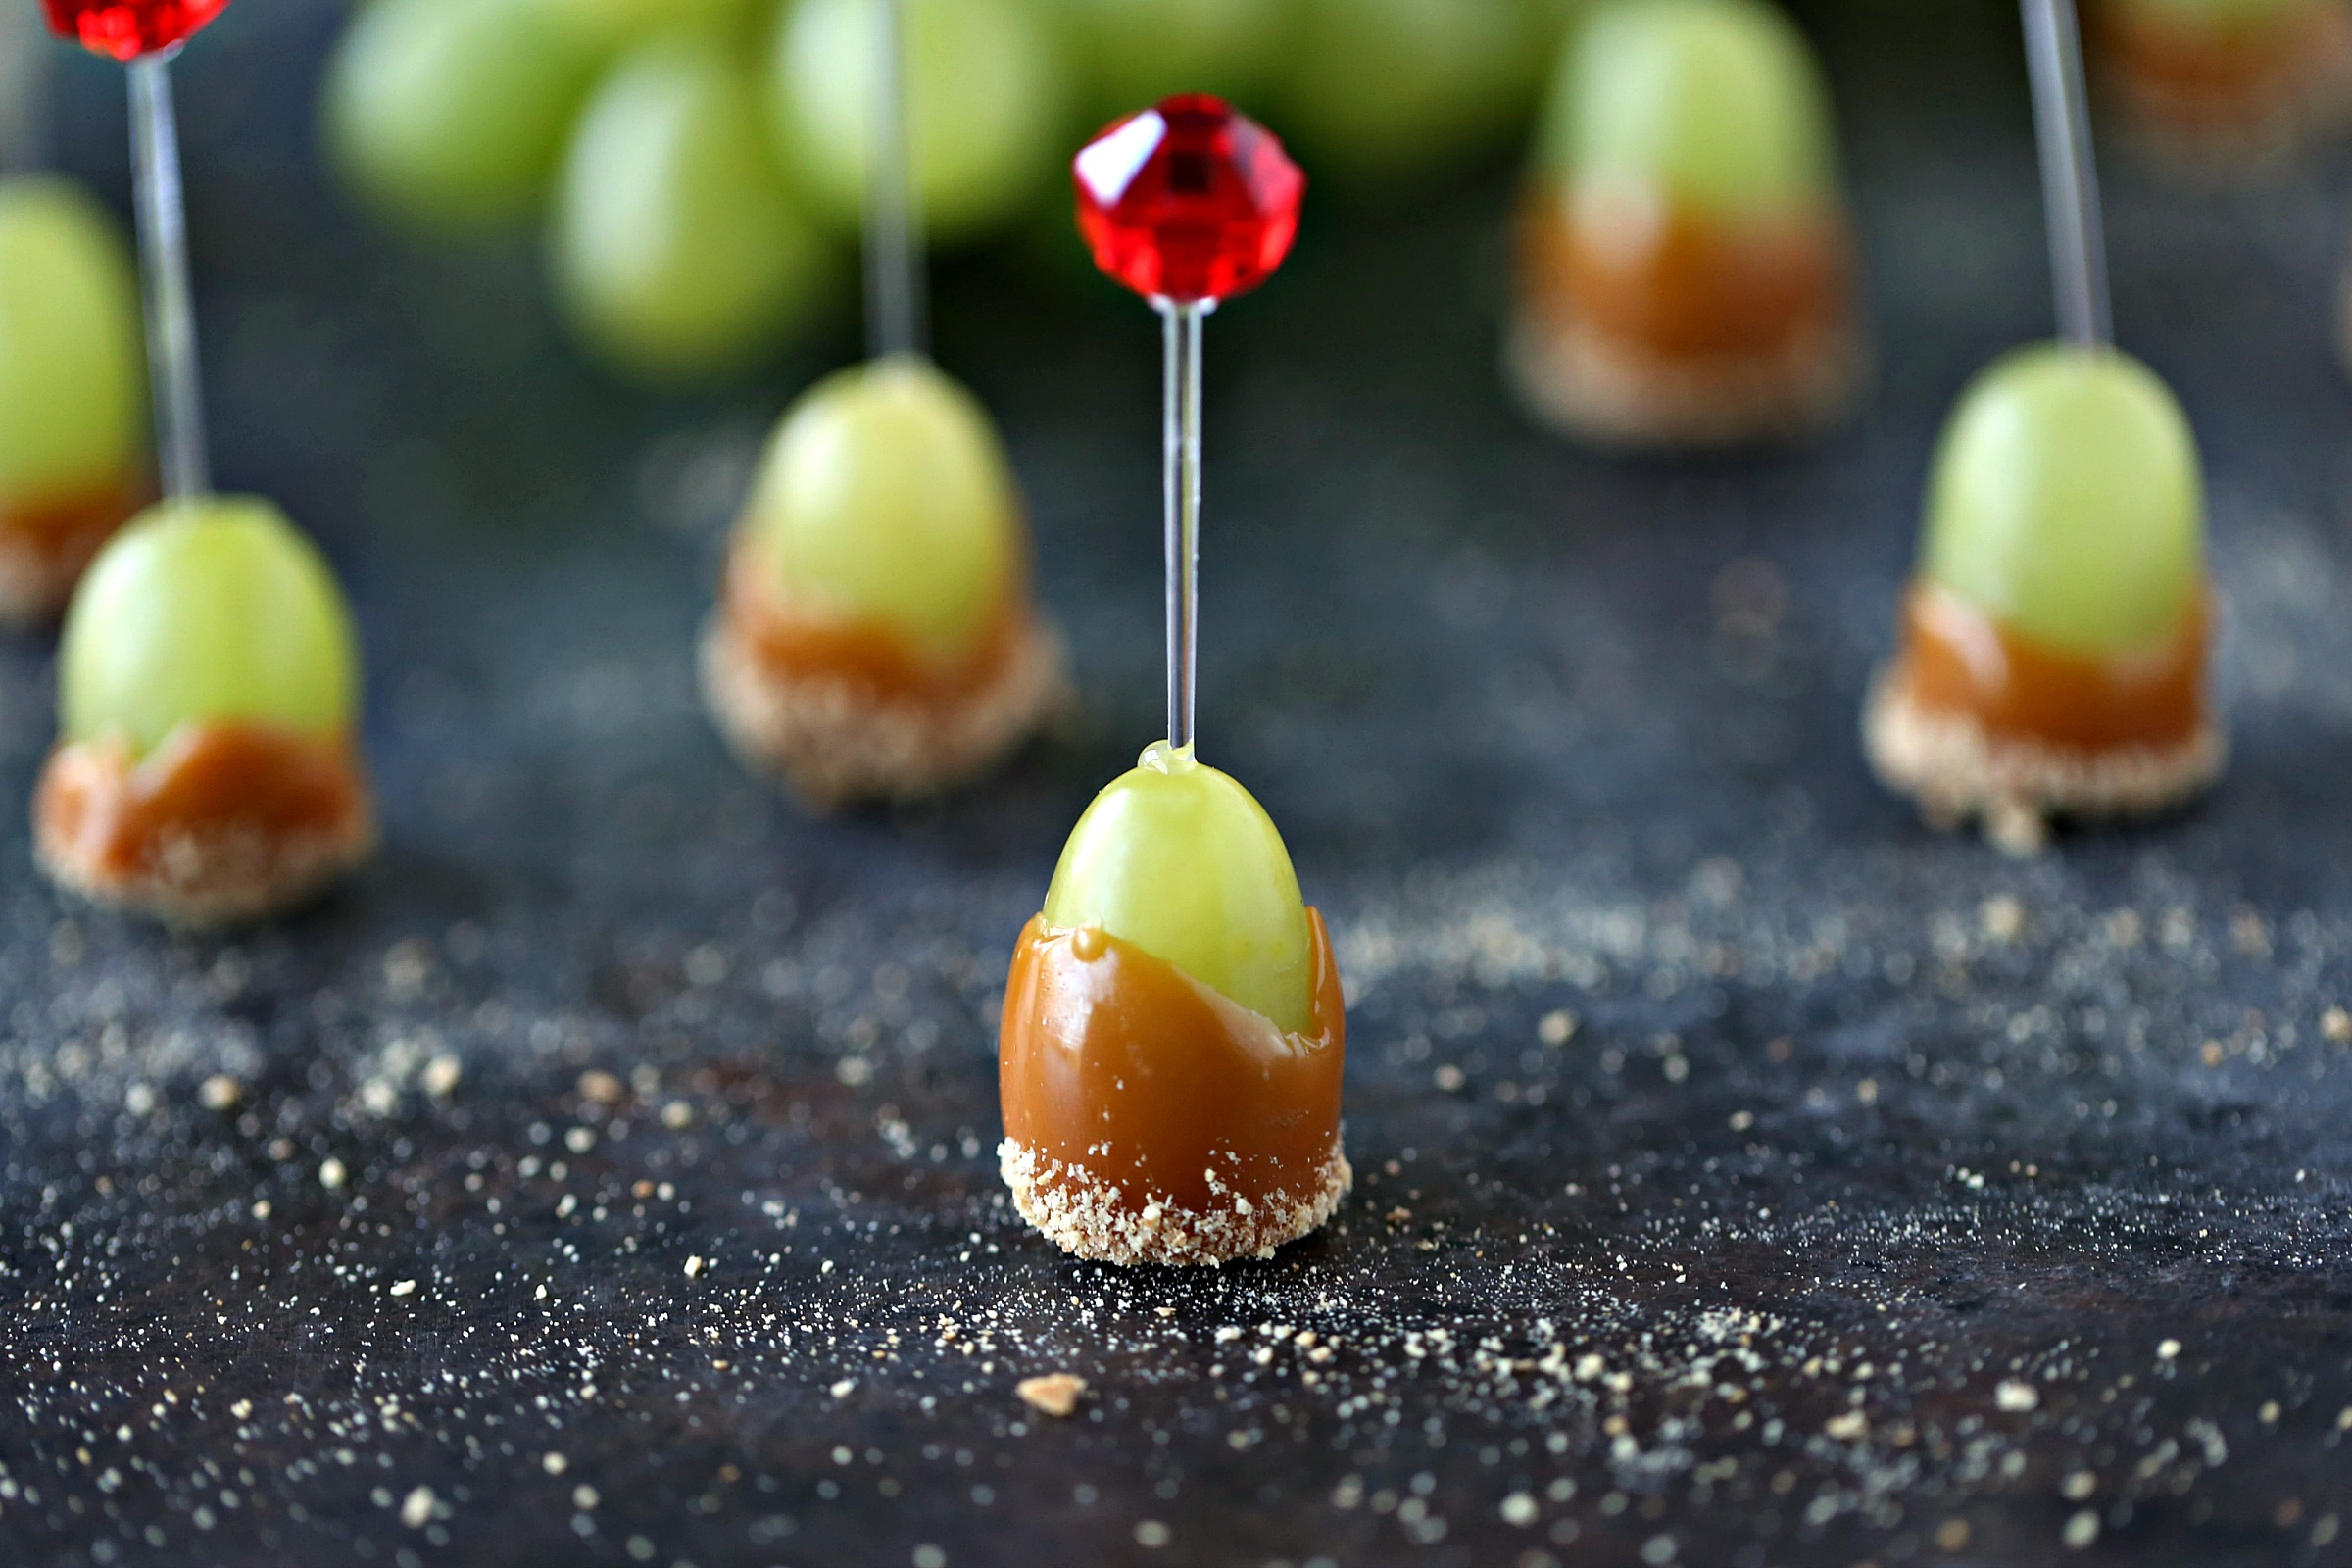 iHeart Home & Family: A Wedding Menu to Make Your Mouth Water